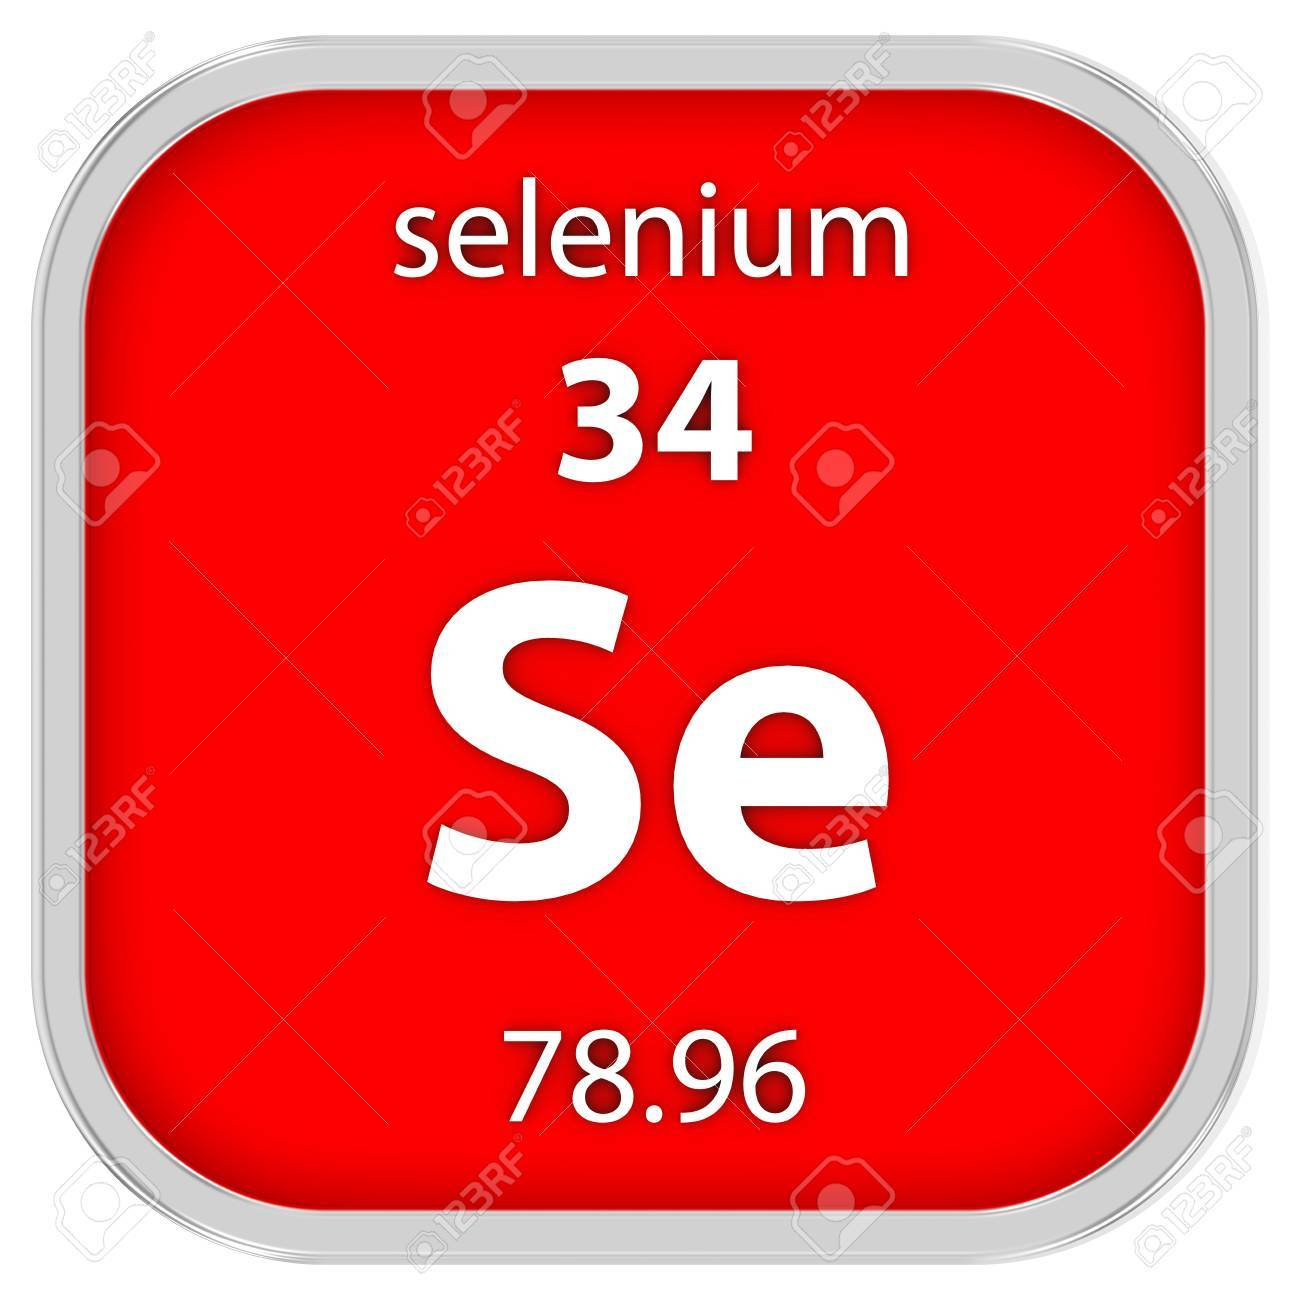 Selenium on the periodic table gallery periodic table images periodic table selenium choice image periodic table images selenium on the periodic table gallery periodic table gamestrikefo Images